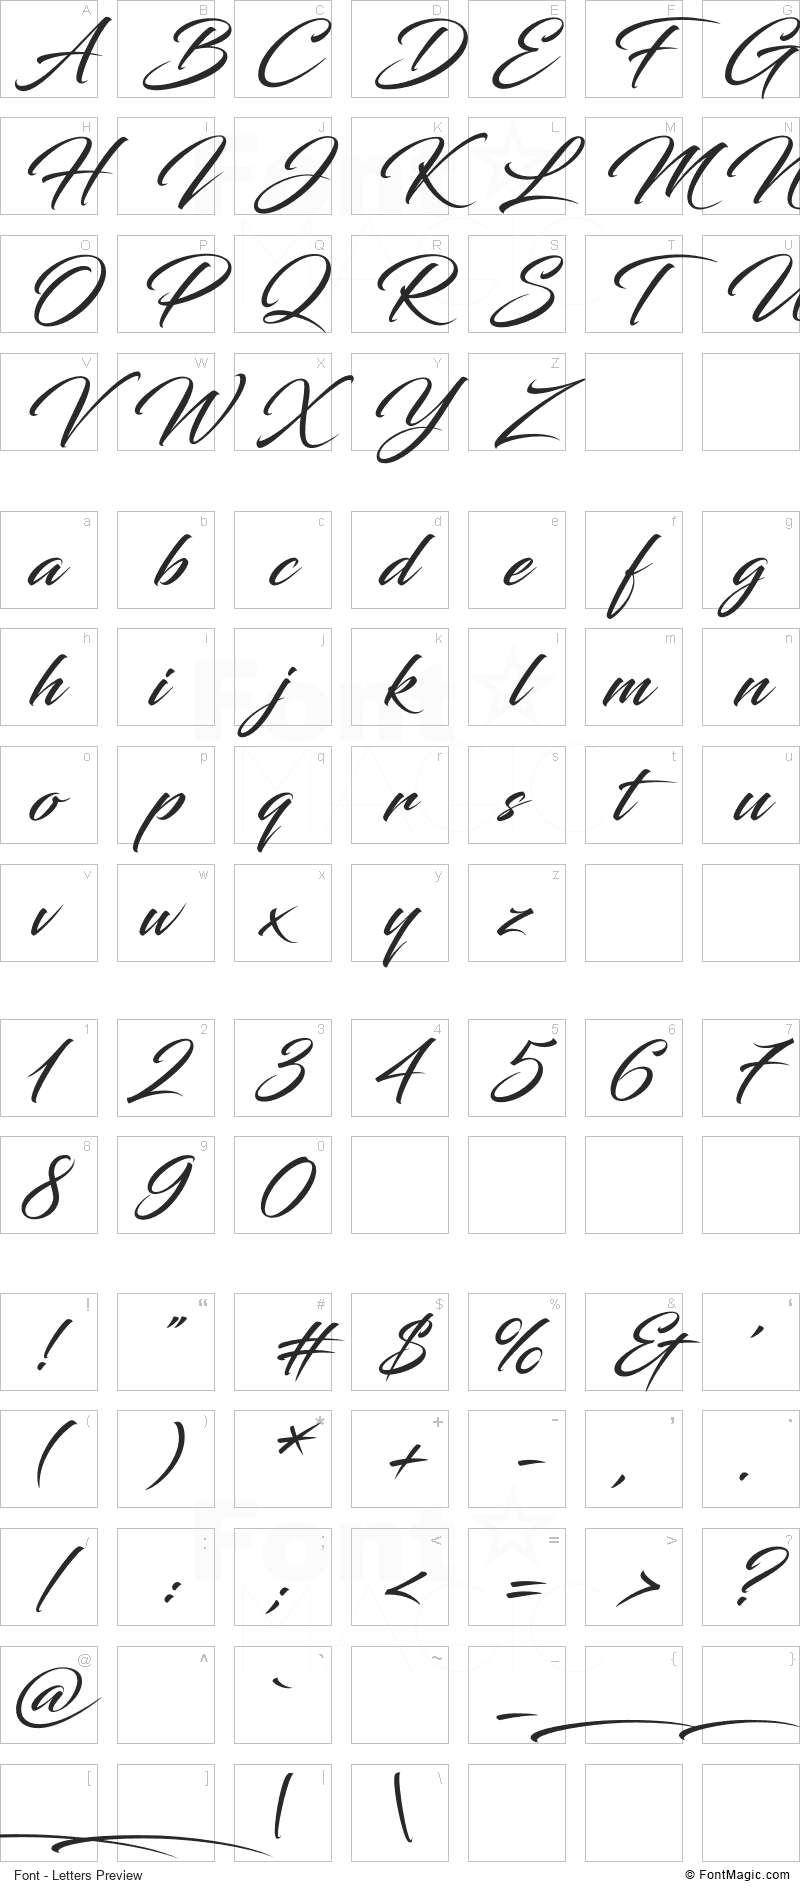 Blacksword Font - All Latters Preview Chart